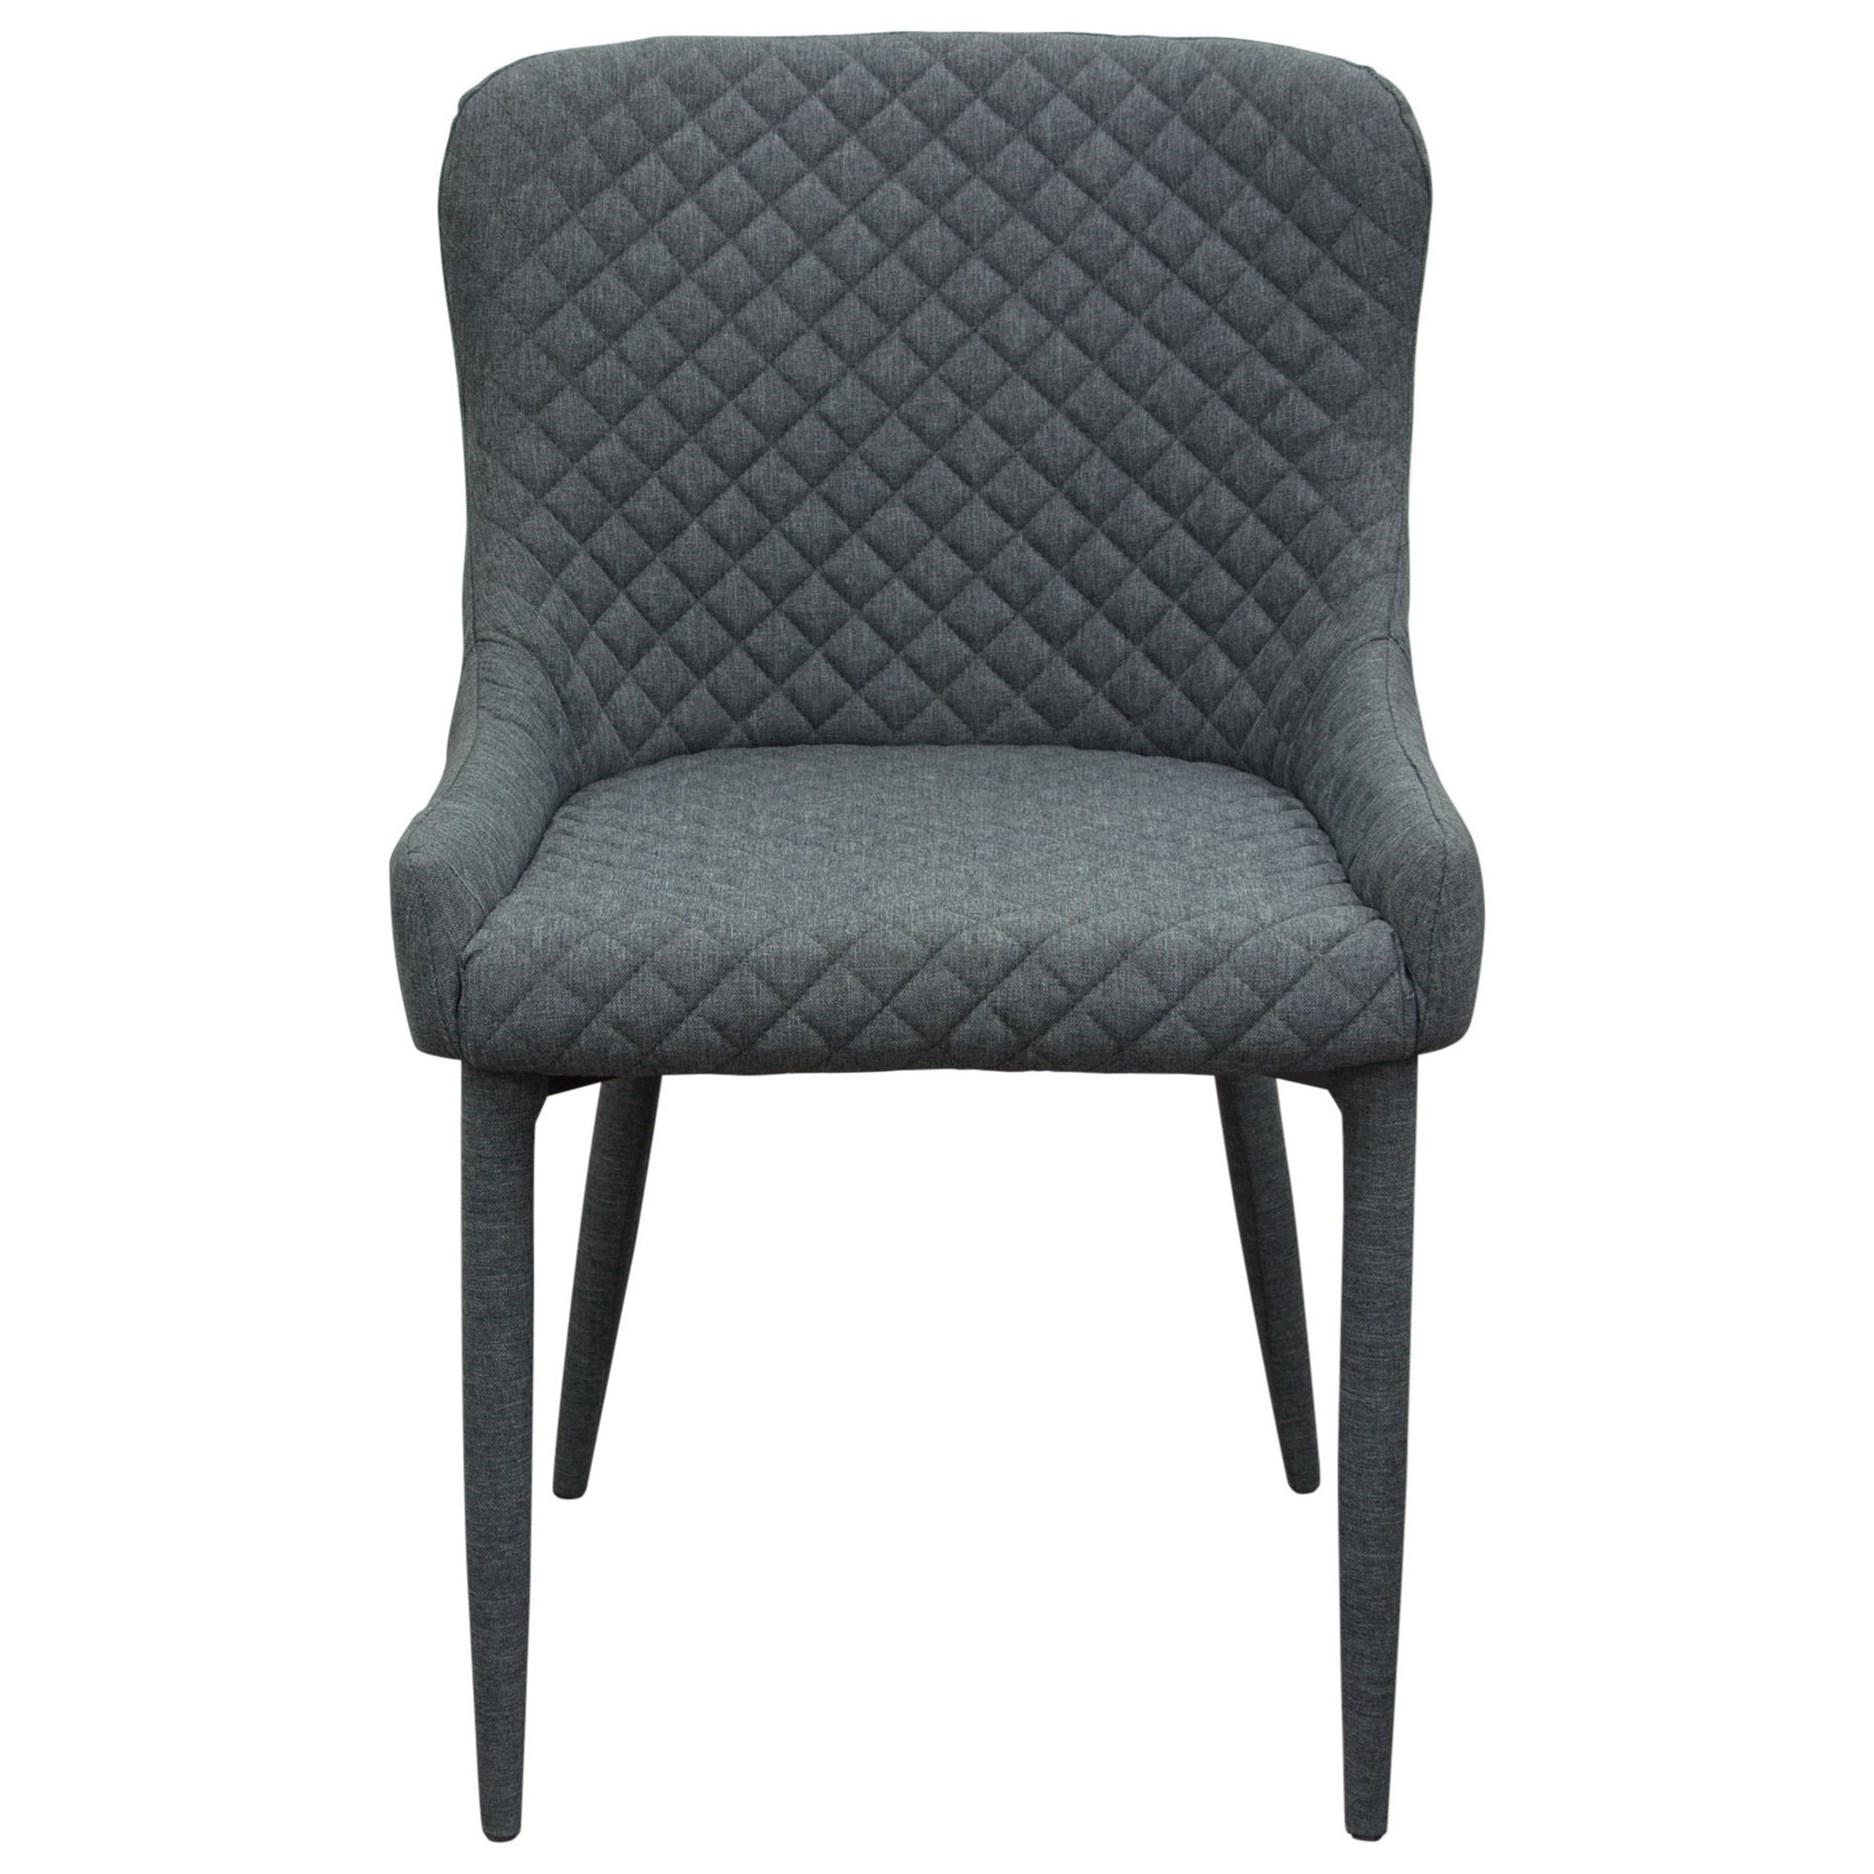 Savoy Set of Two Accent Chairs by Diamond Sofa at Red Knot